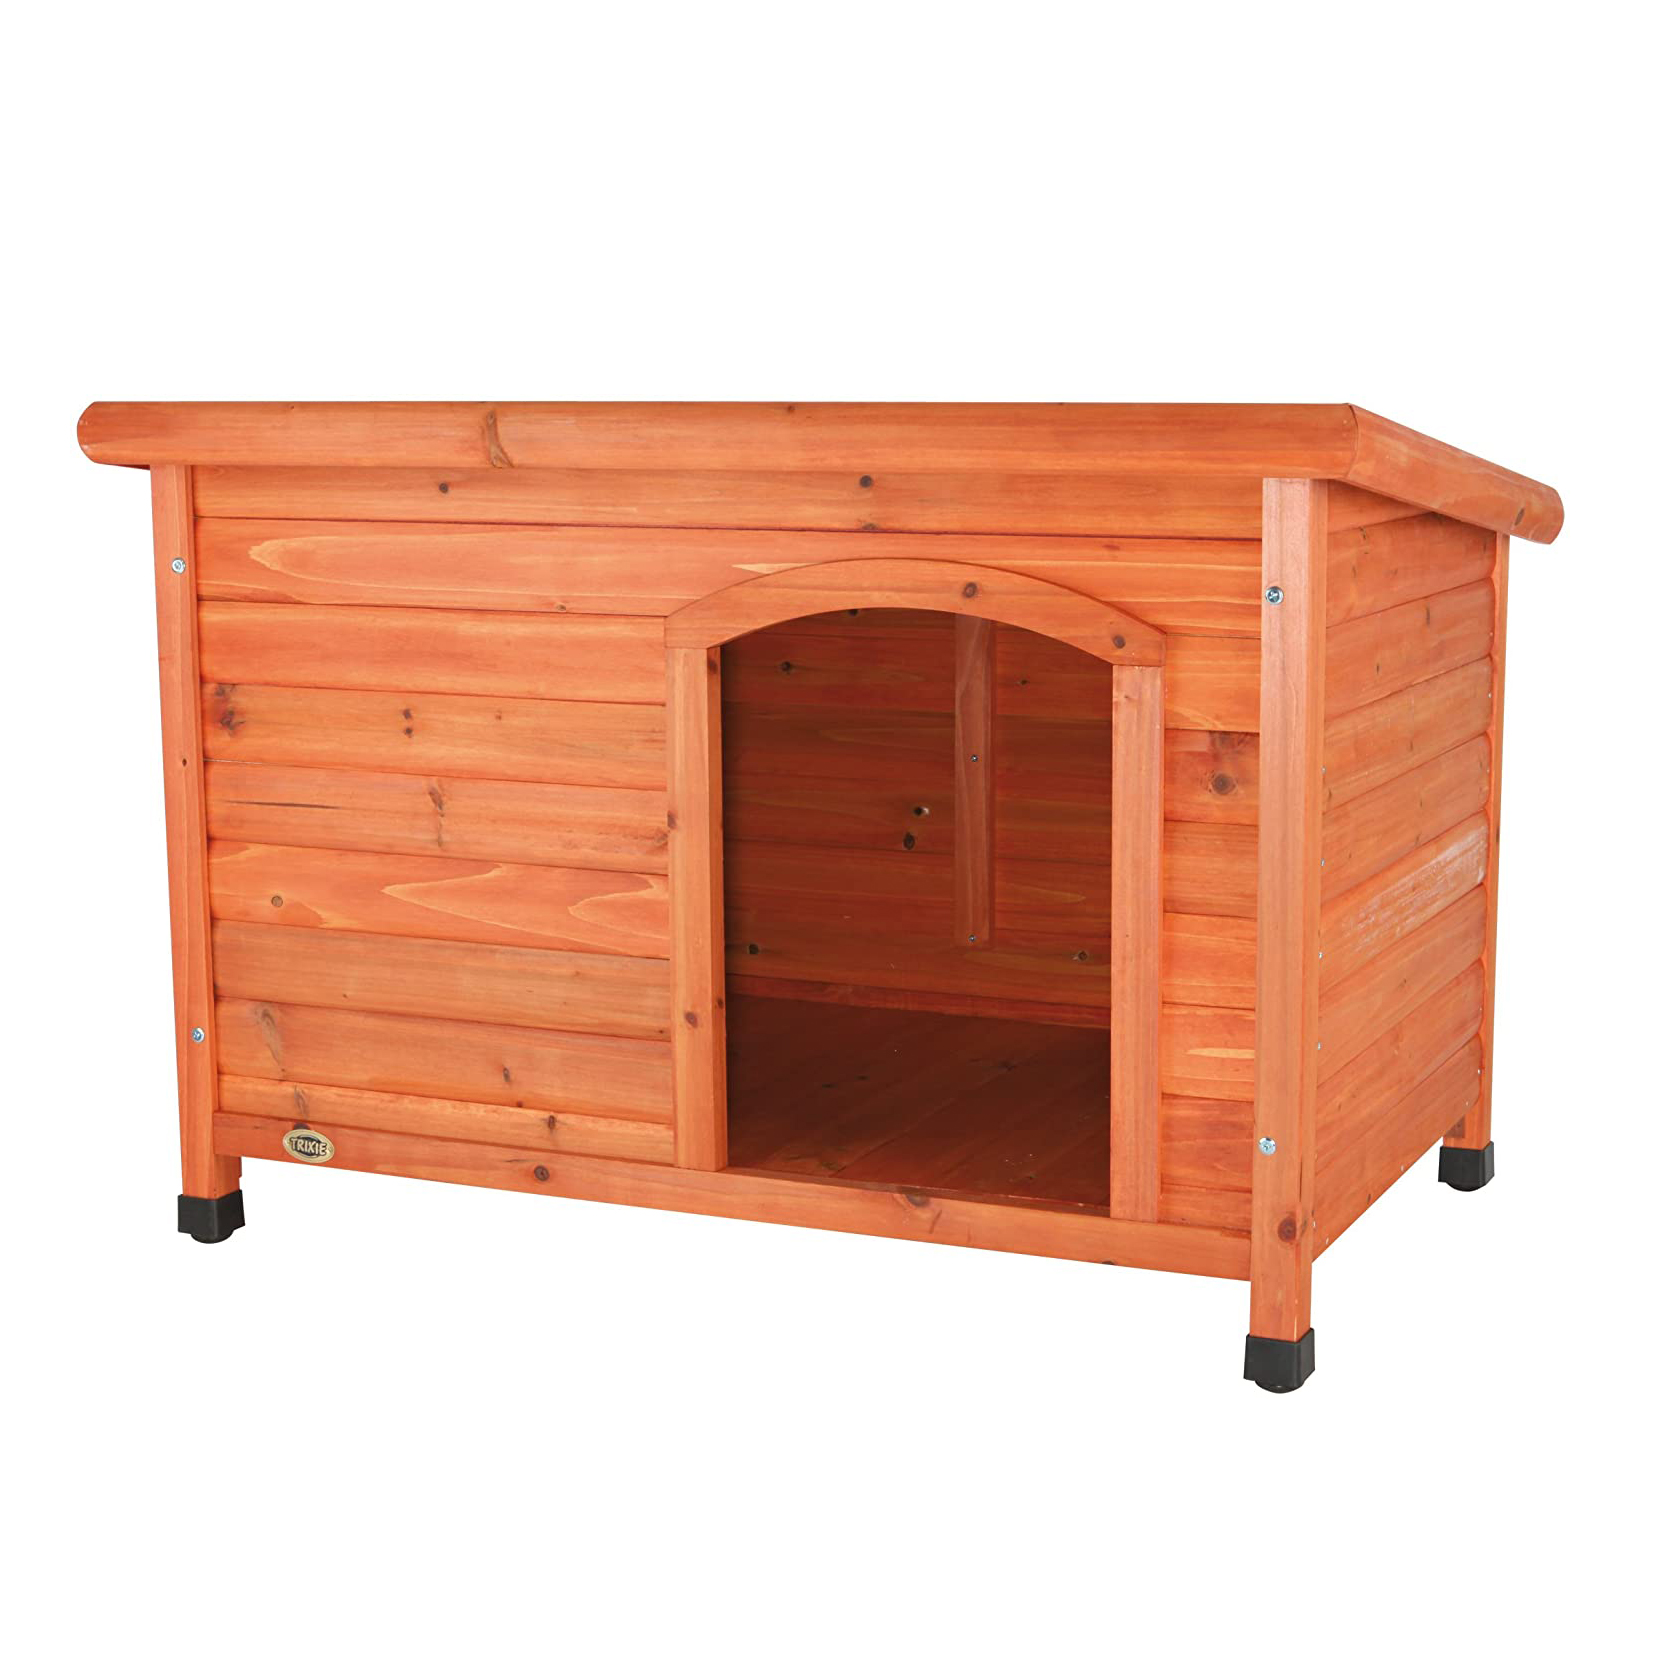 trixie-classic-outdoor-wooden-dog-house